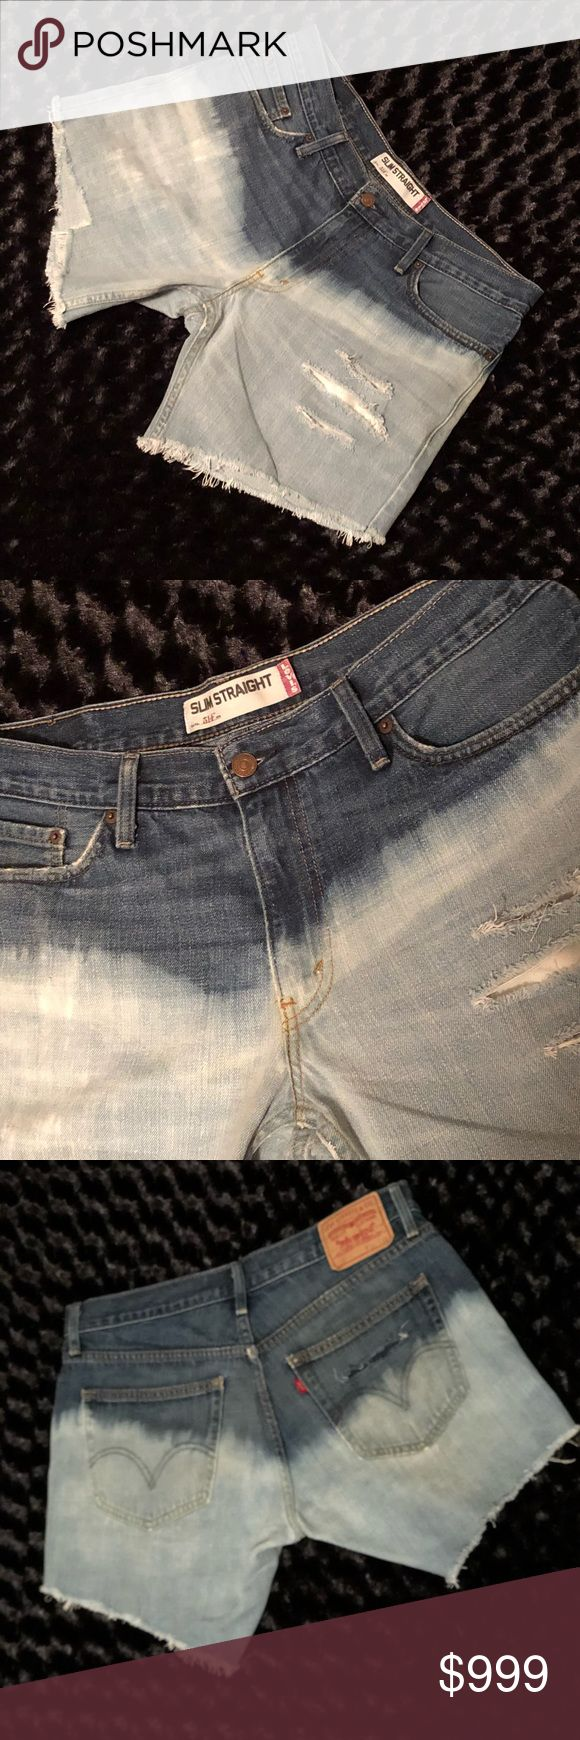 "Distressed Levi's Custom bleached and destroyed Authentic Levi's 514's. The actual jeans are 34"" waist. Measurements are approximately waist 34"", inseam 7"", hips 44"", rise. Per measurements the shorts translate to a size 12/14 so I am listing them as such. ❗️MULTIPLE SIZES CHOSEN FOR SEARCH FUNCTIONALITY AND BECAUSE THE ITEM WILL FIT ALL SELECTED SIZES❗️ NO TRADES Levi's Shorts Jean Shorts"